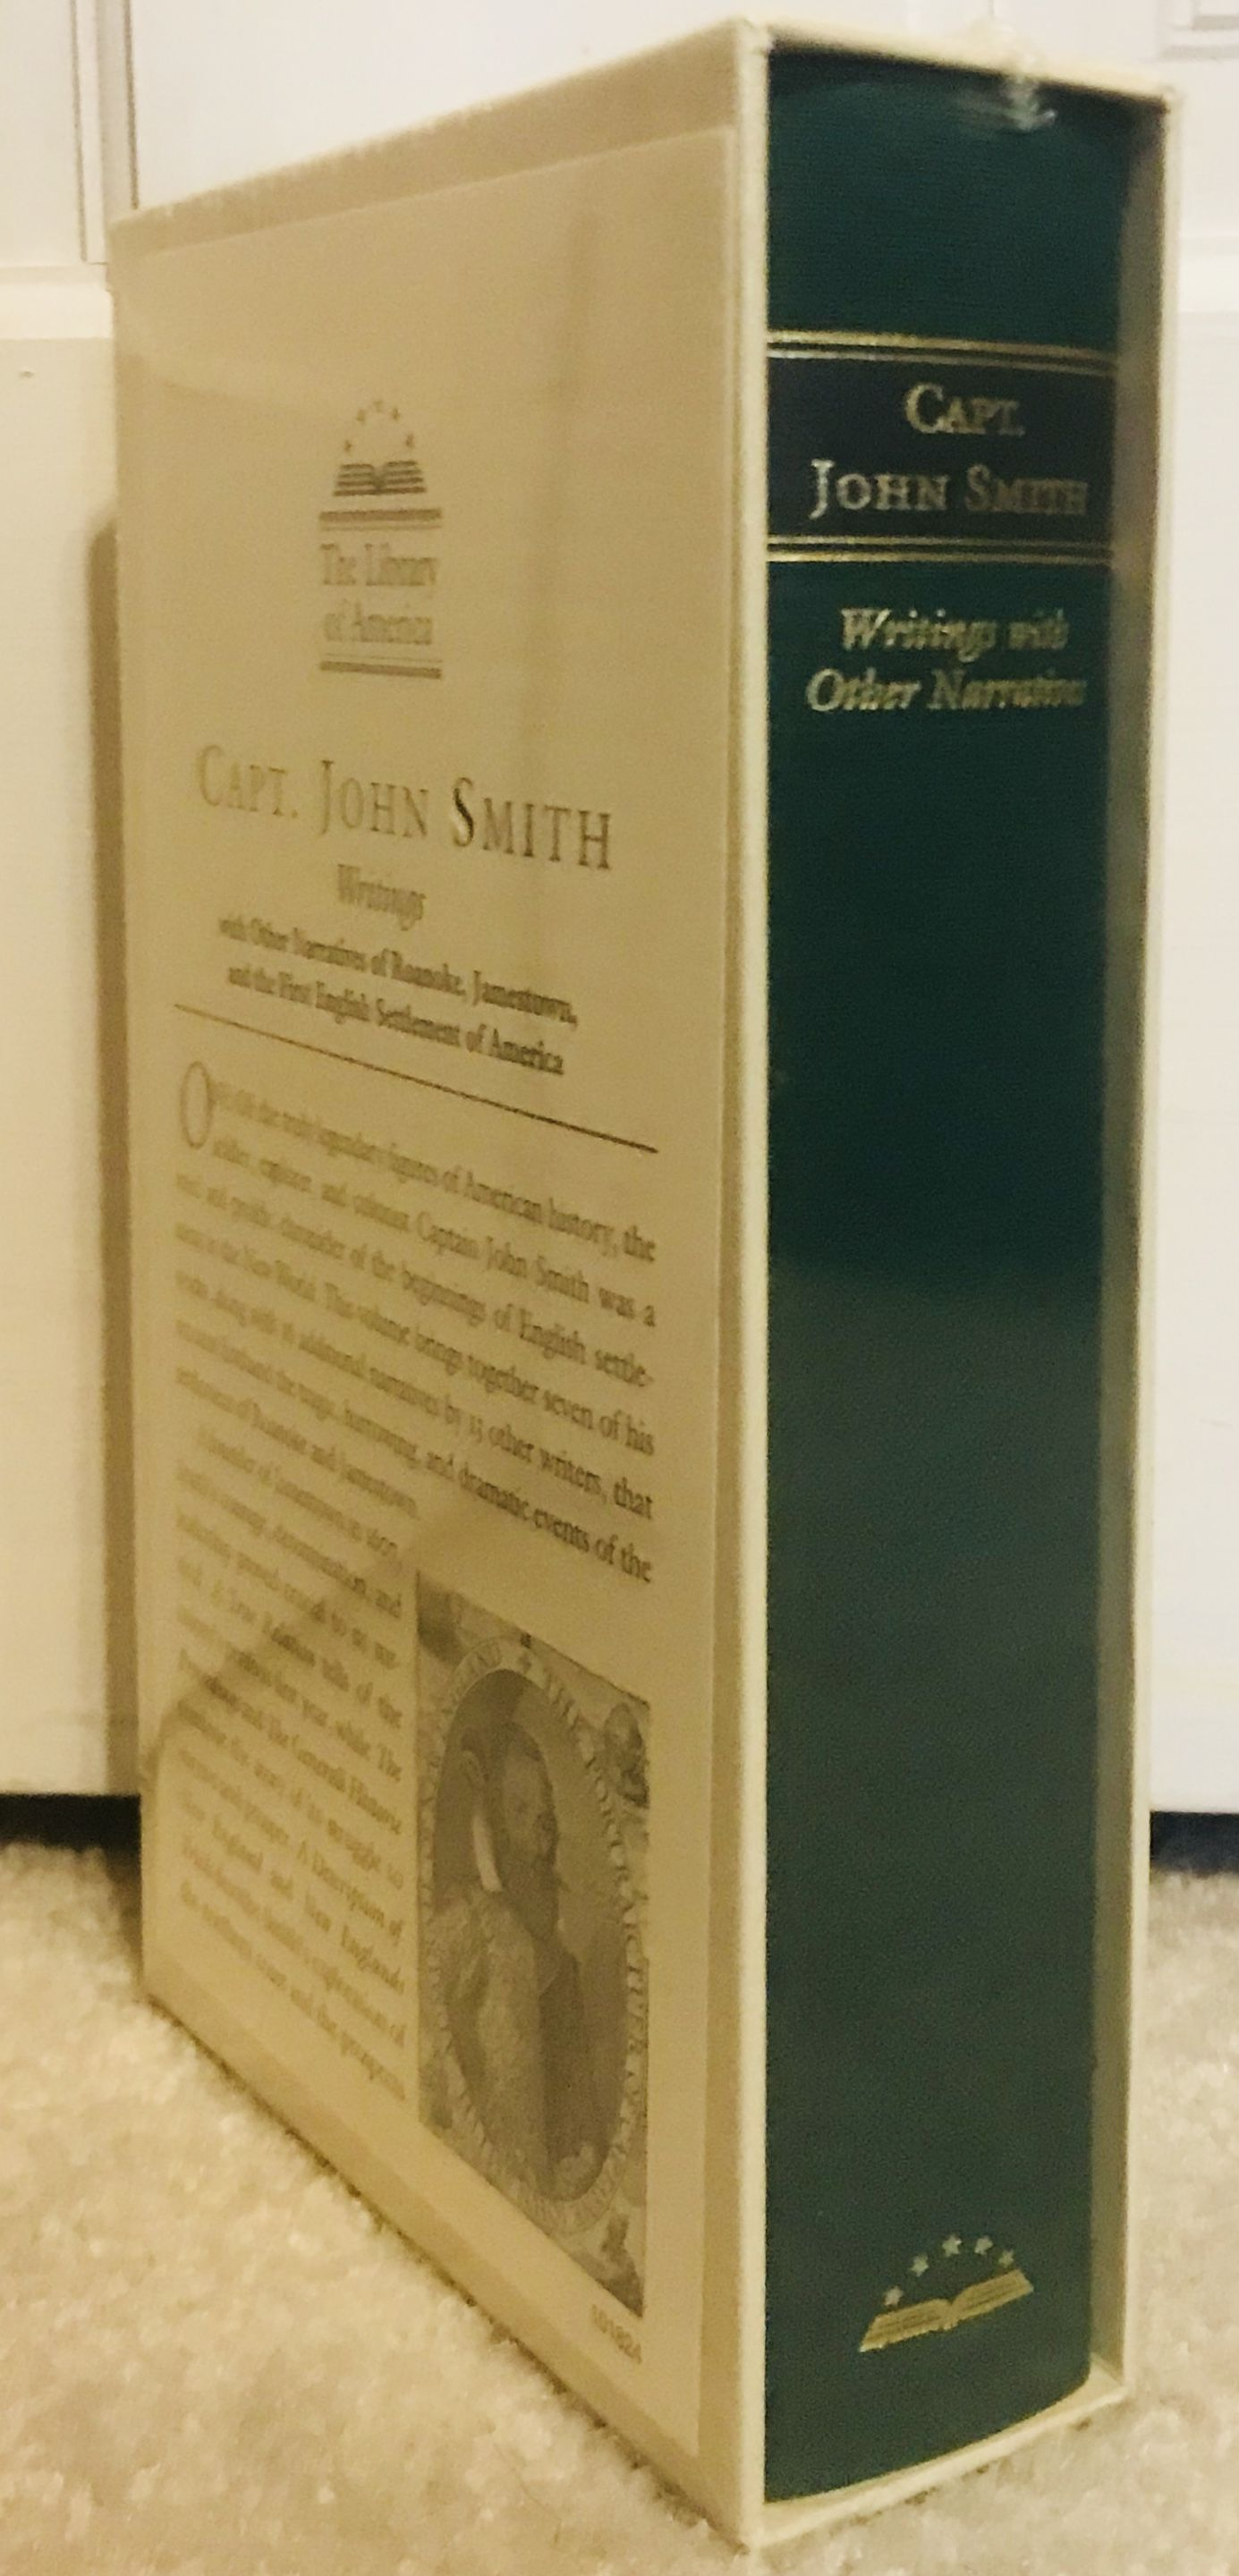 Capt. John Smith: Writings, with Other Narratives of Roanoke, Jamestown, and the First English Settlement of America (The Library of America), Capt. John Smith